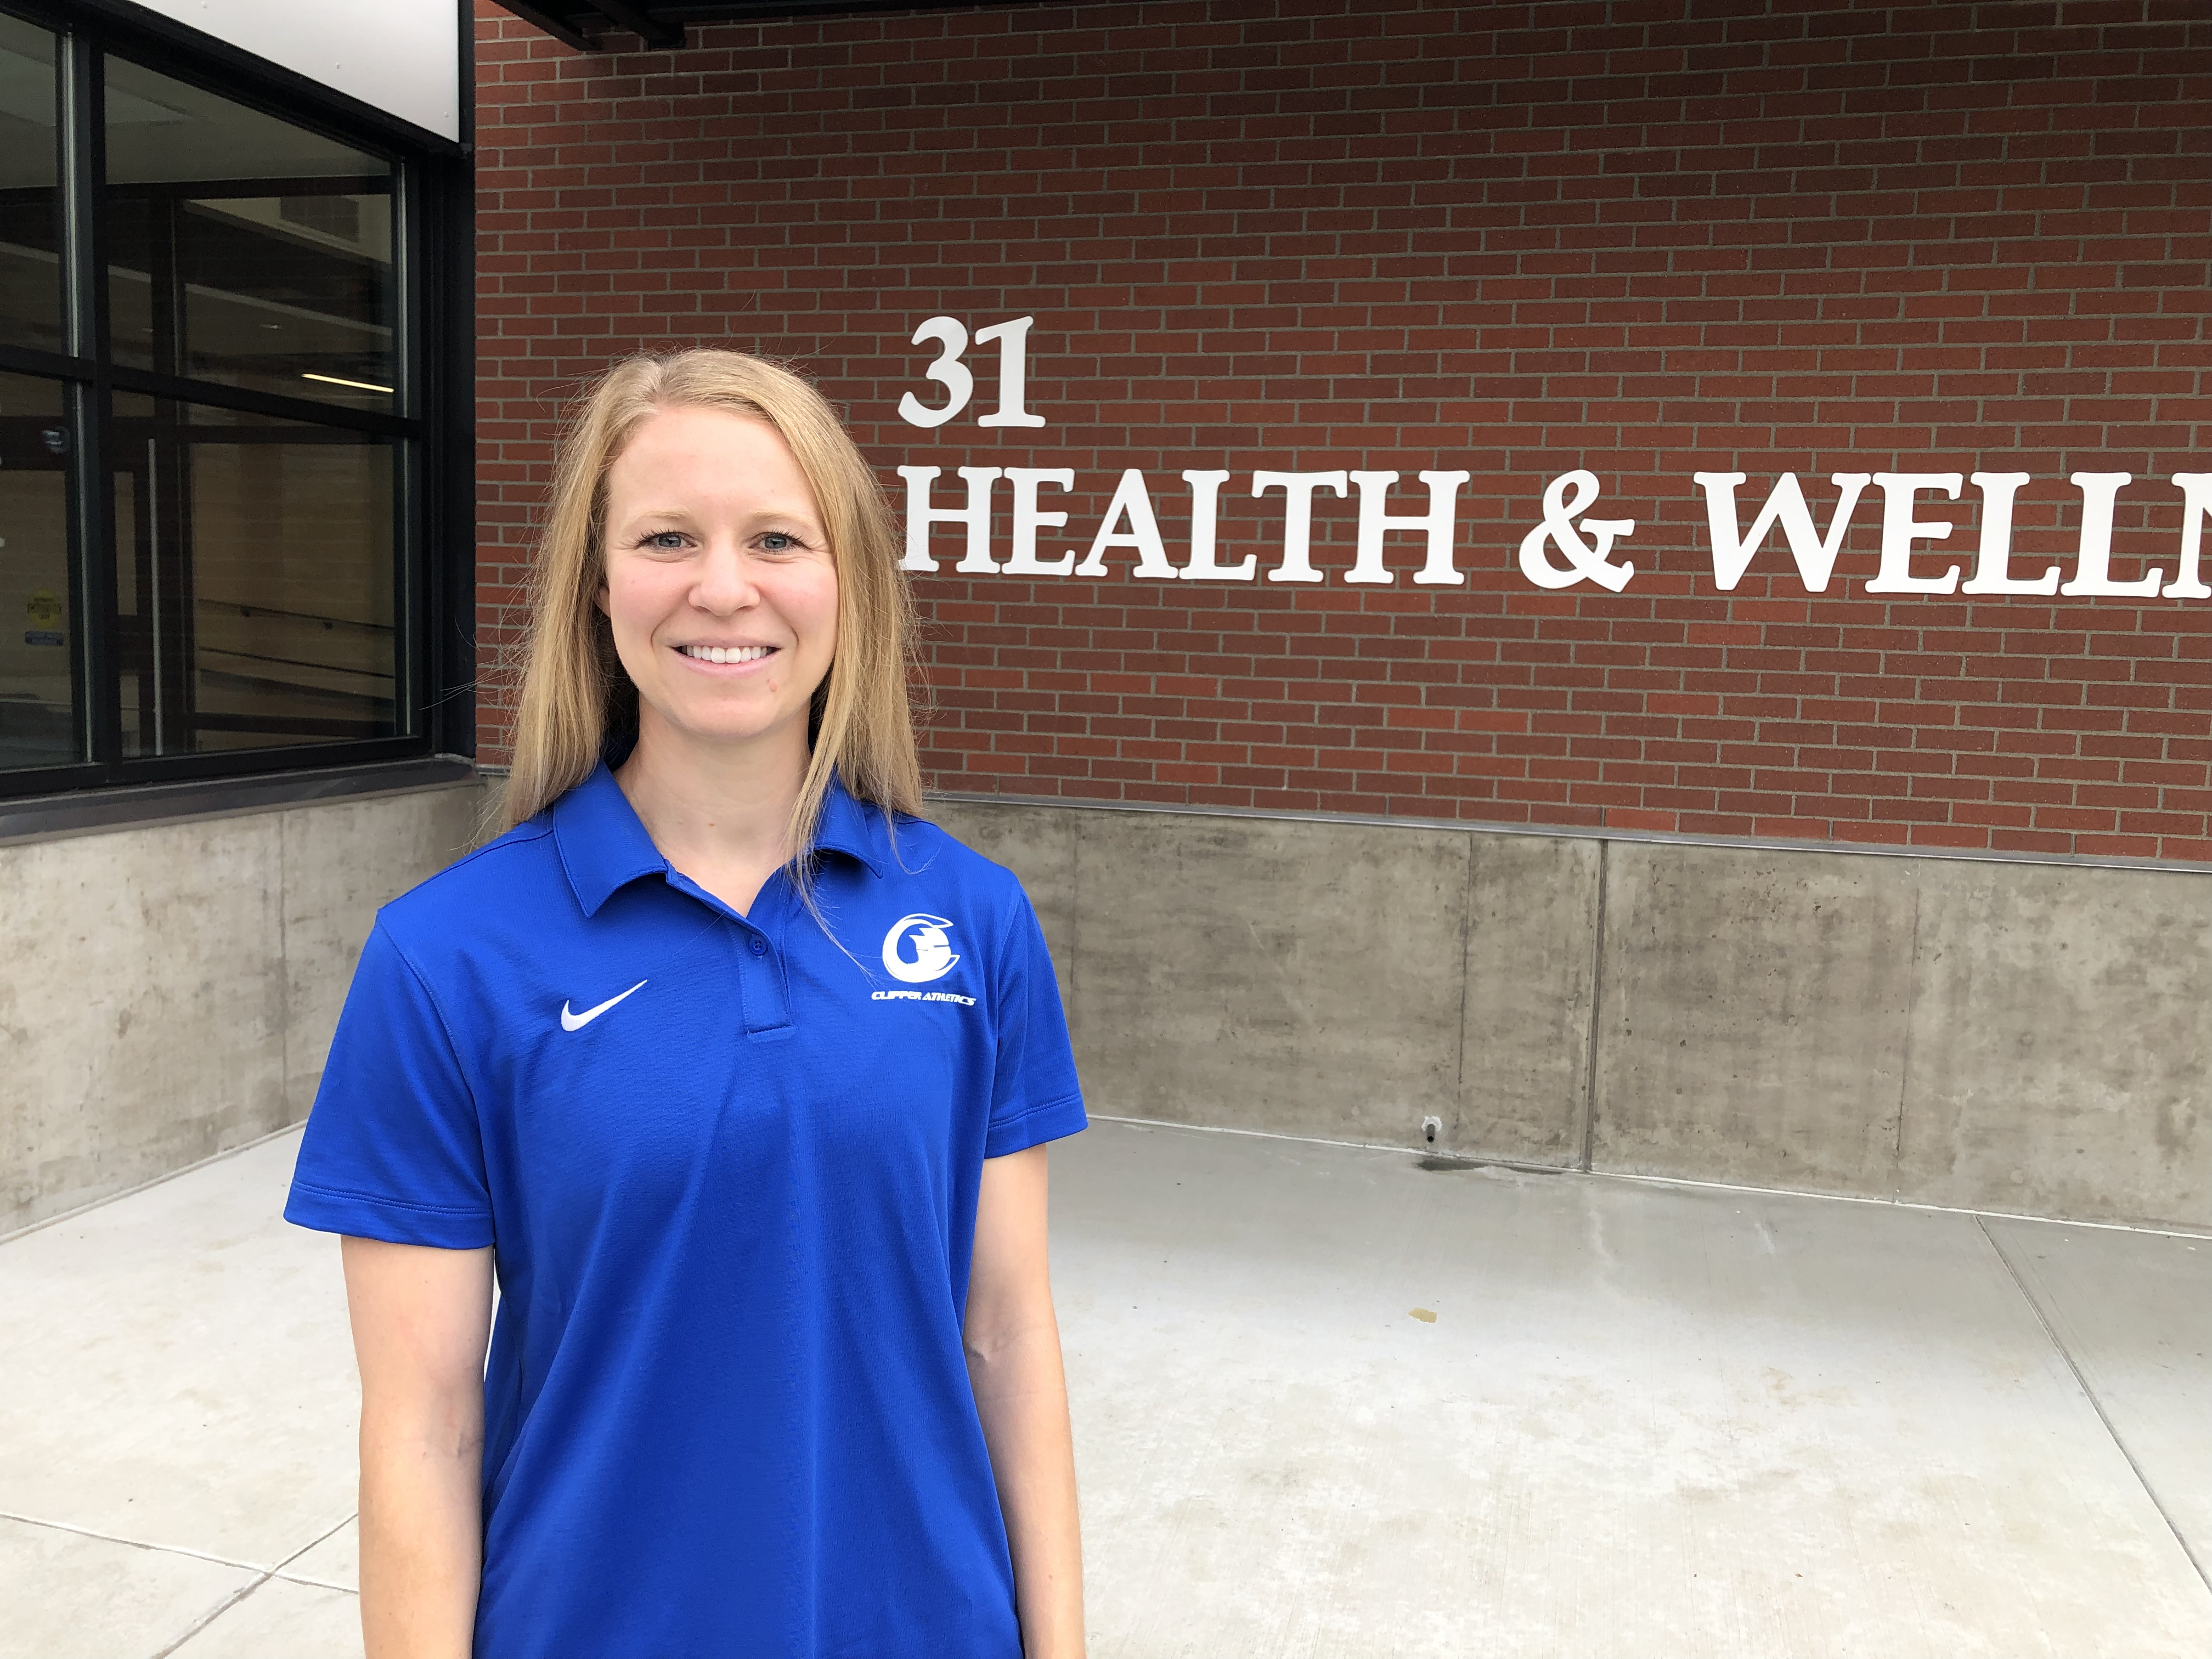 Coach Mader smiles in a blue Clipper Athletics polo outside of the Health & Wellness Center (Bldg. 31)